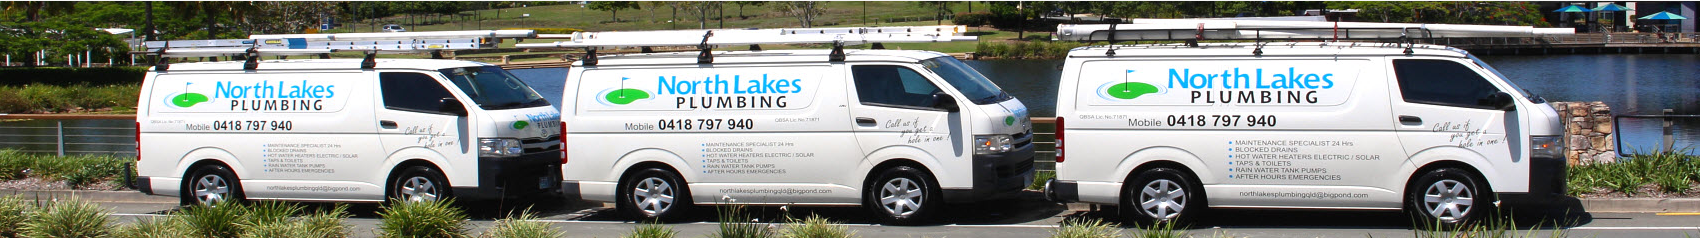 North Lakes Plumbing have plumbers all over Brisbane to provide after hours and emergency residential and commercial plumber, hotwater and gasfitting services.